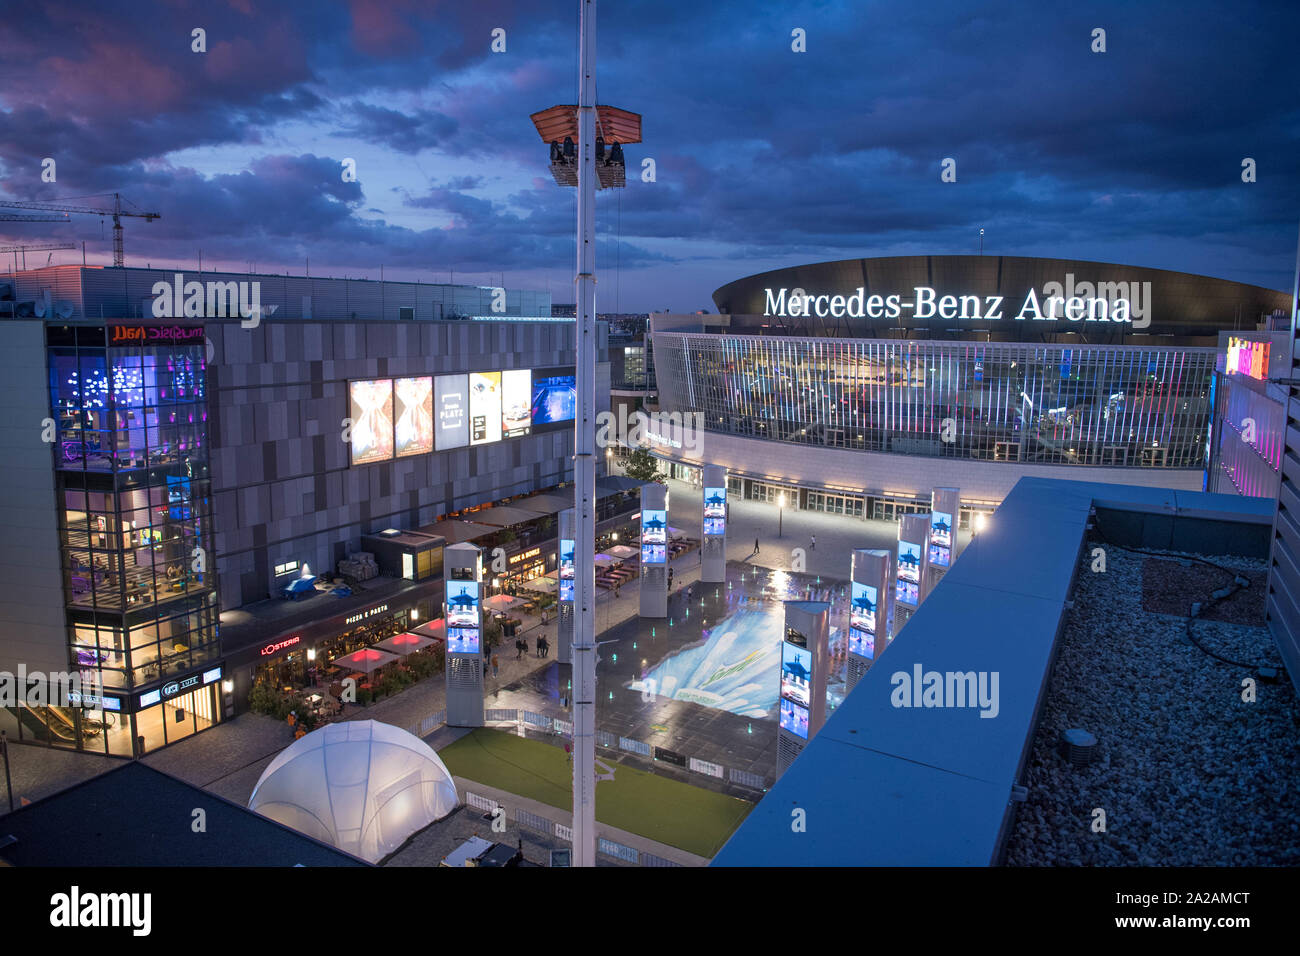 Berlin, Germany. 19th Sep, 2019. View of the Mercedes Square and the Mercedes-Benz Arena from above. Credit: Jörg Carstensen/dpa/Alamy Live News Stock Photo